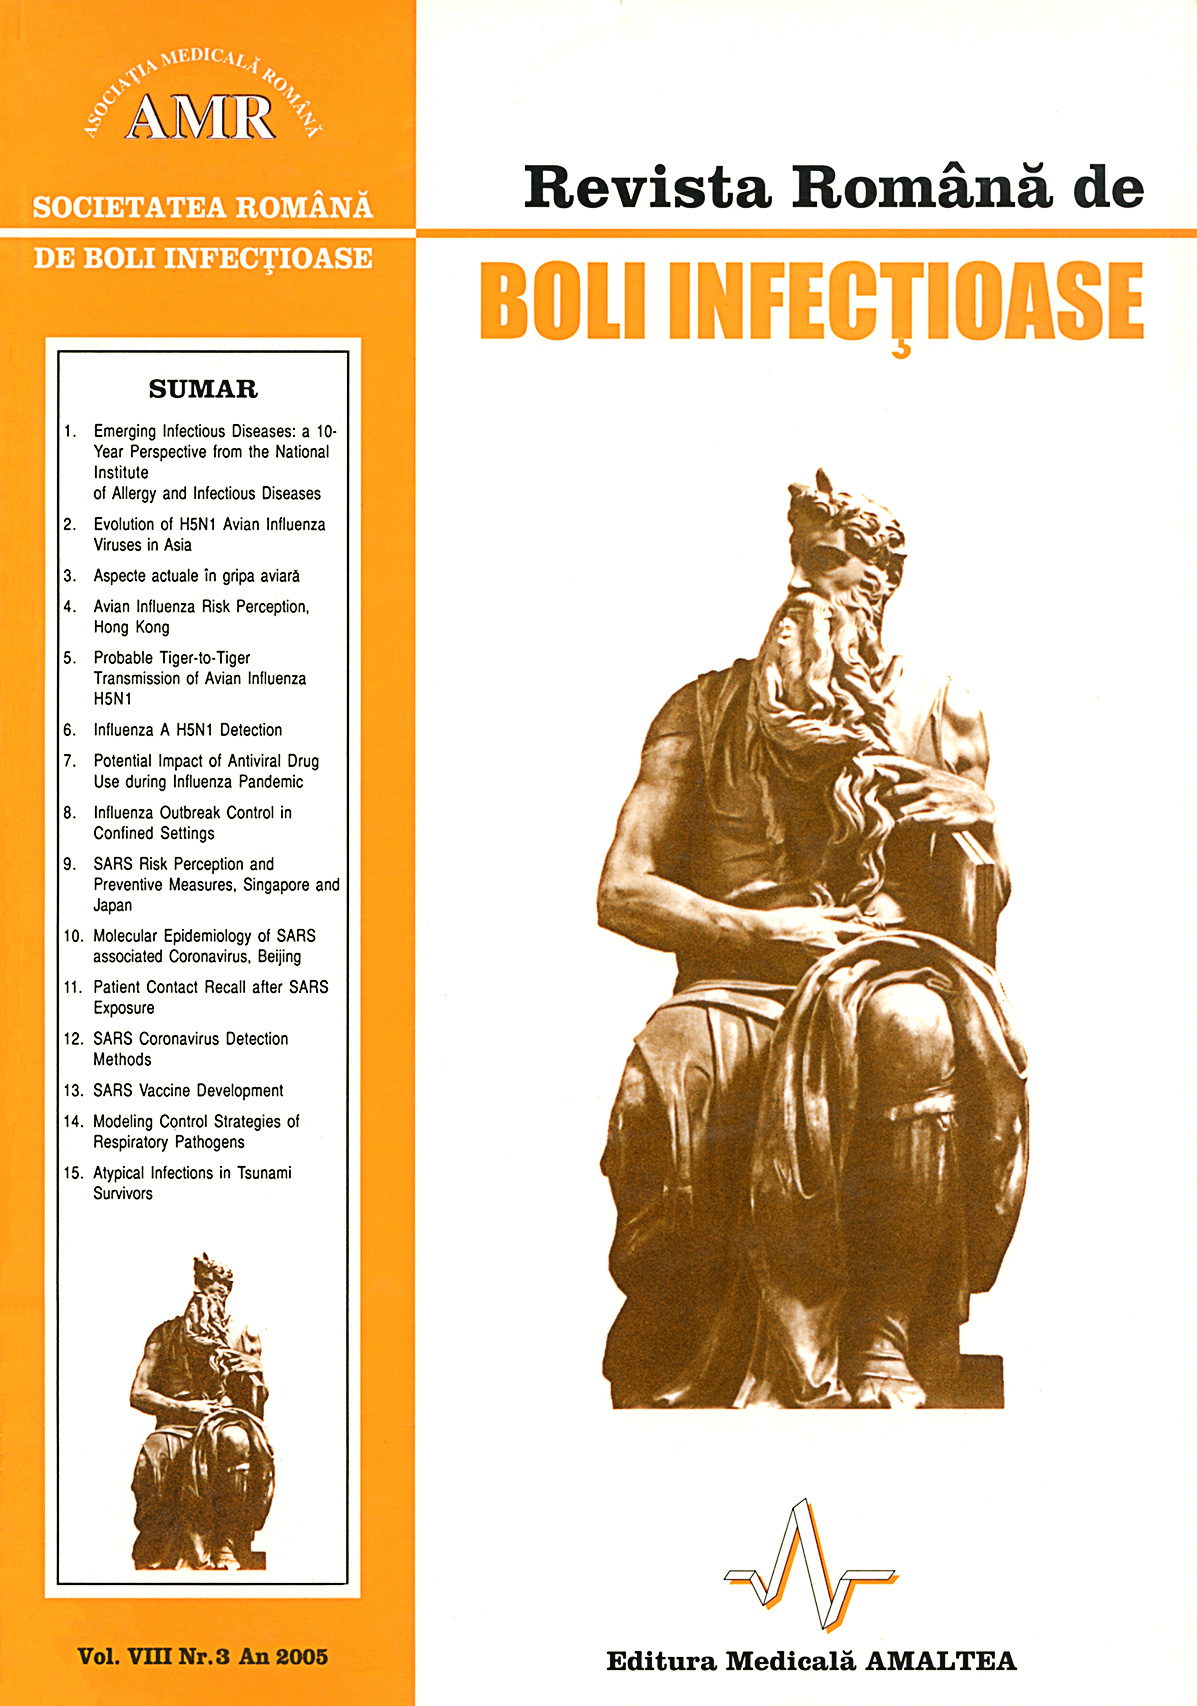 Revista Romana de Boli Infectioase | Vol. VIII, No. 3, 2005